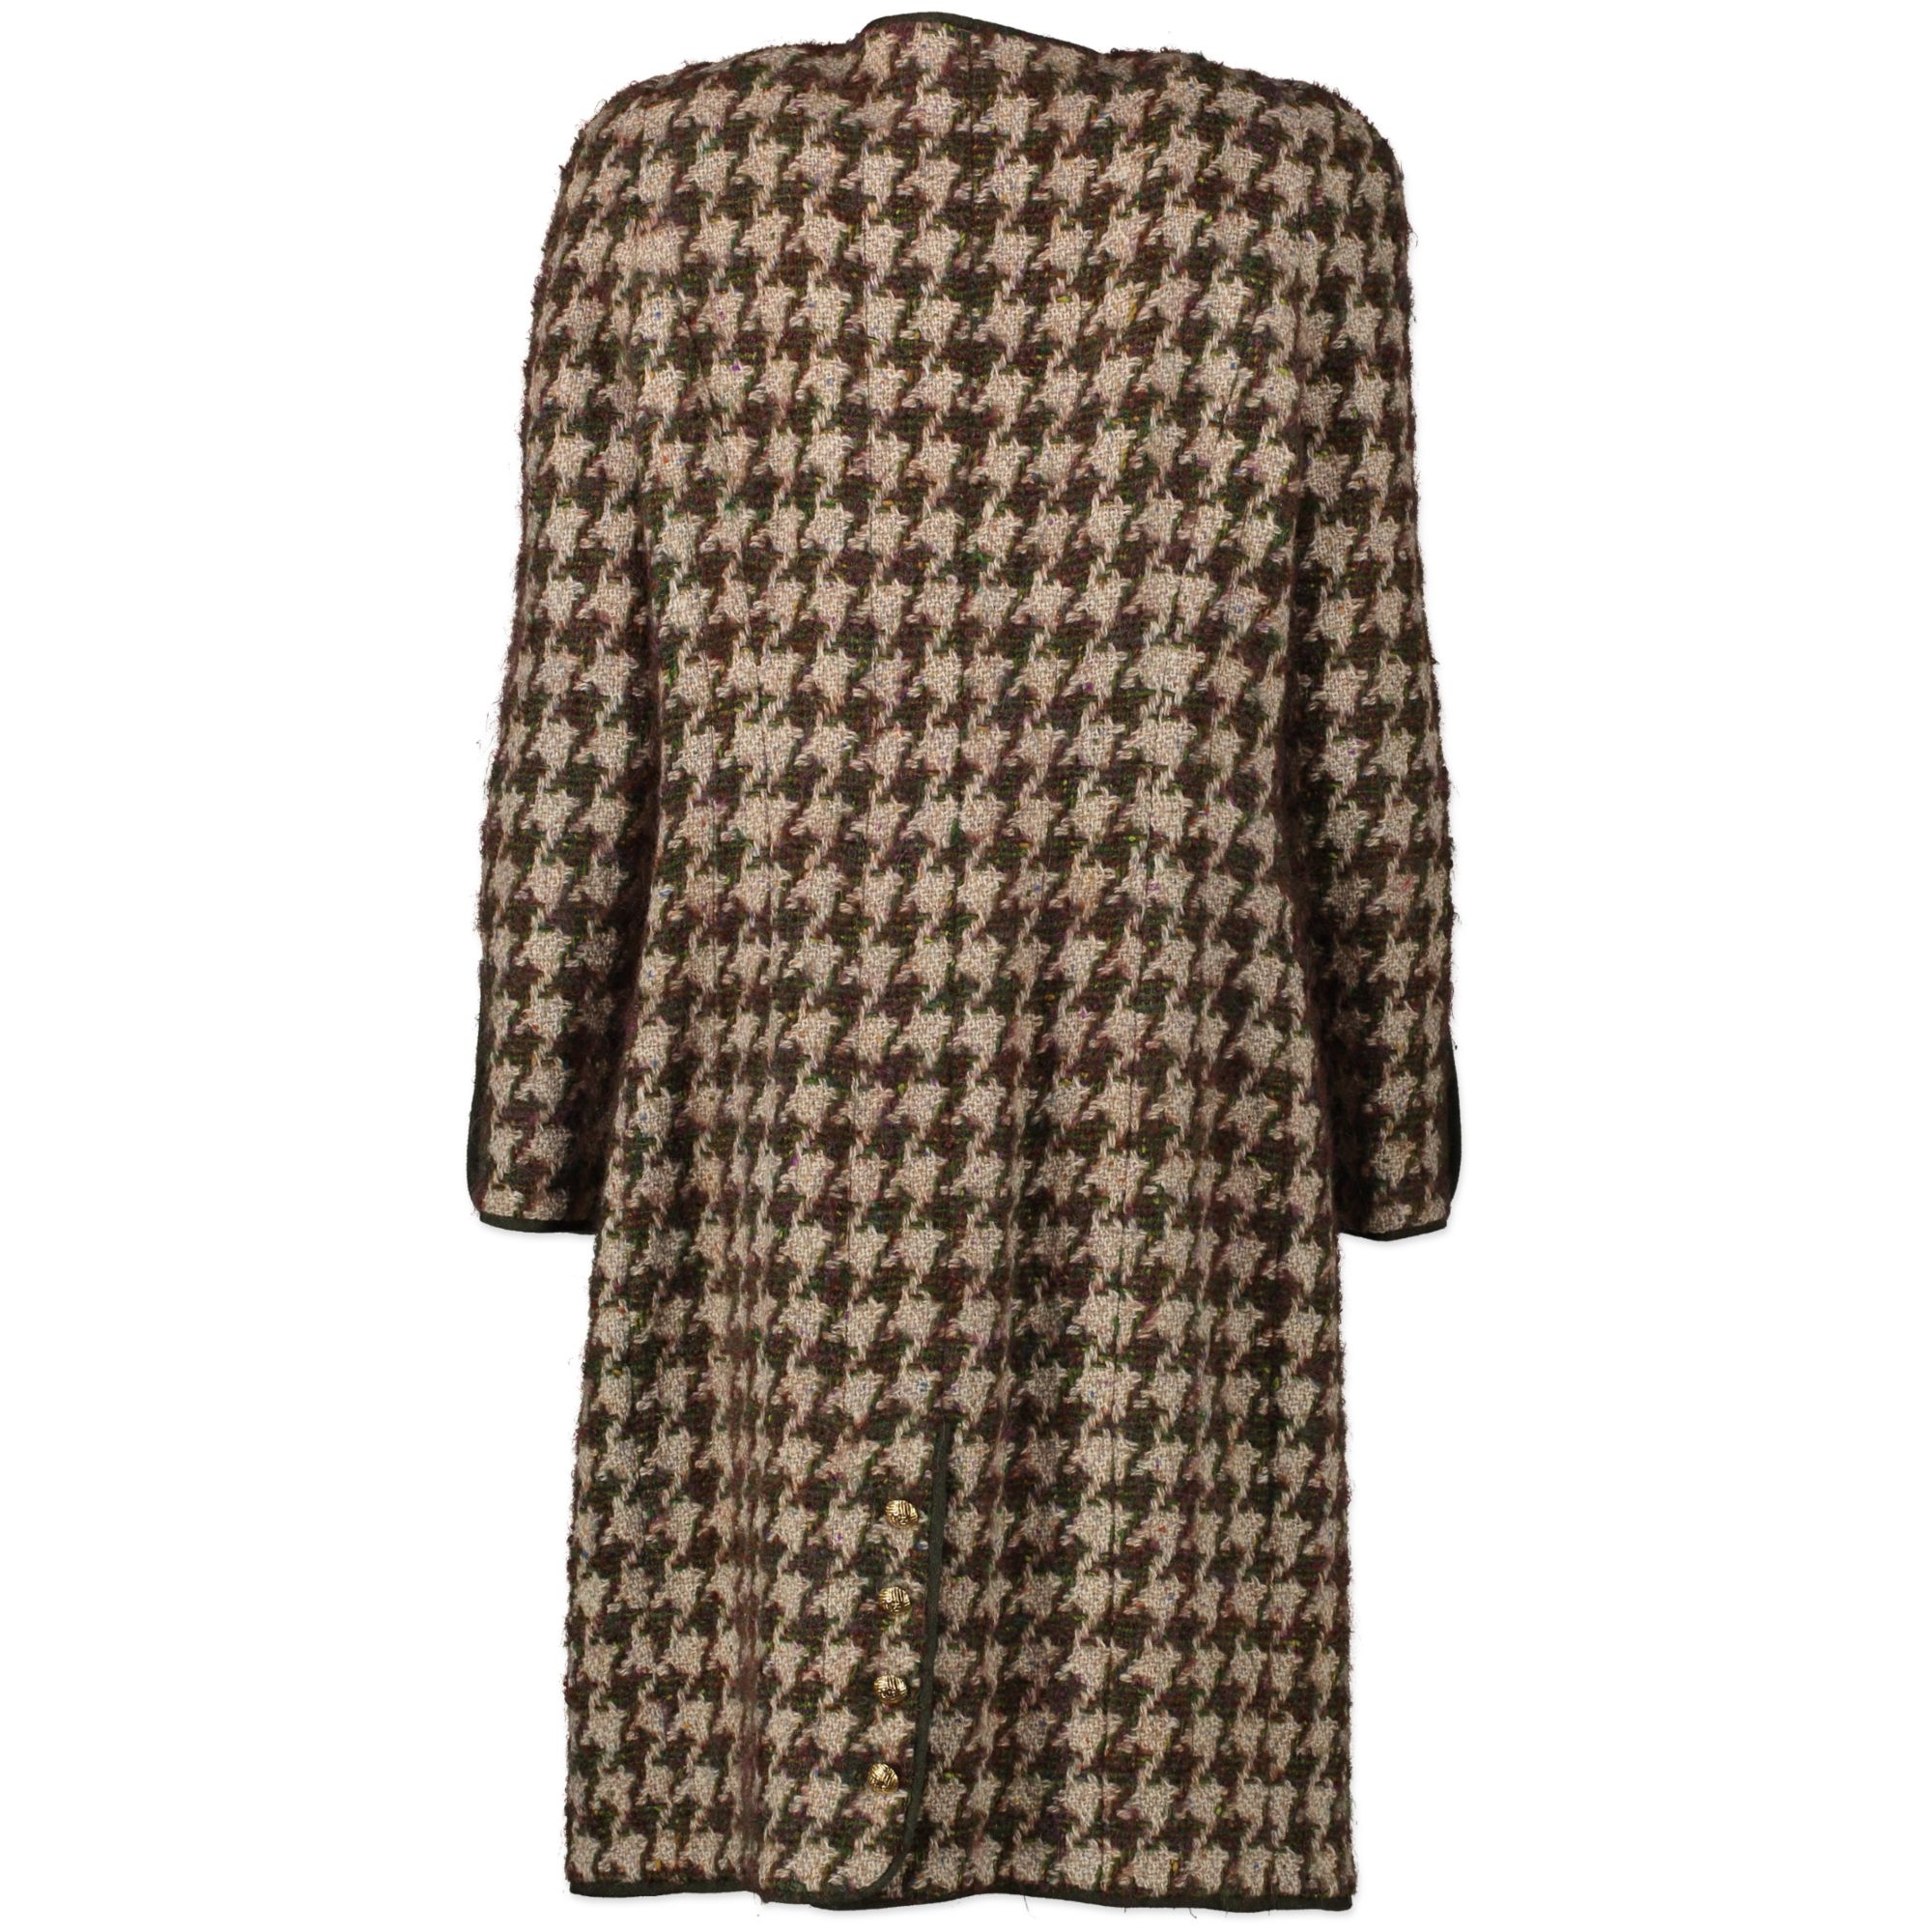 Chanel Houndstooth Multicolor Tweed Long Blazer